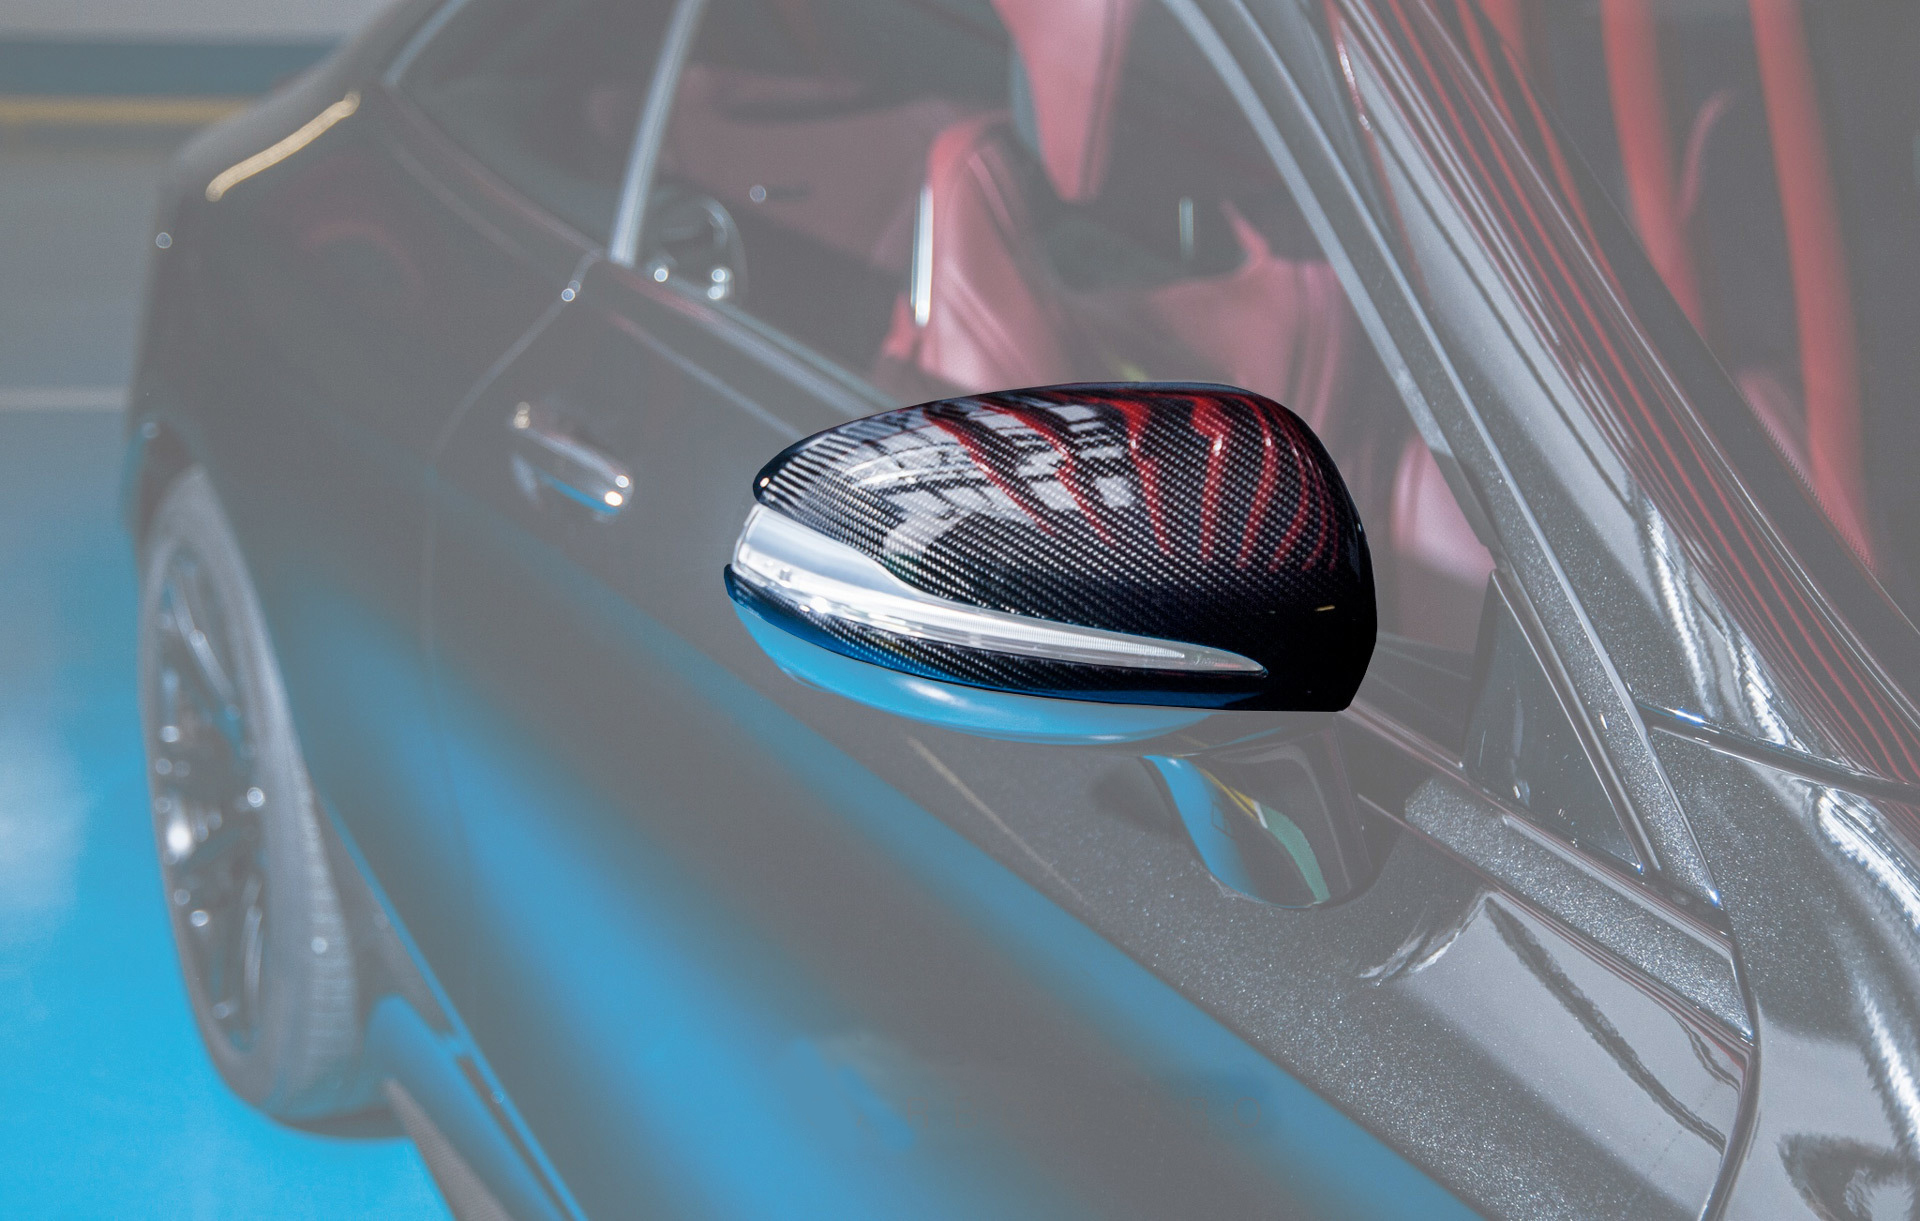 Hodoor Performance Carbon fiber covers for mirrors 63 AMG Style for Mercedes S-class W222